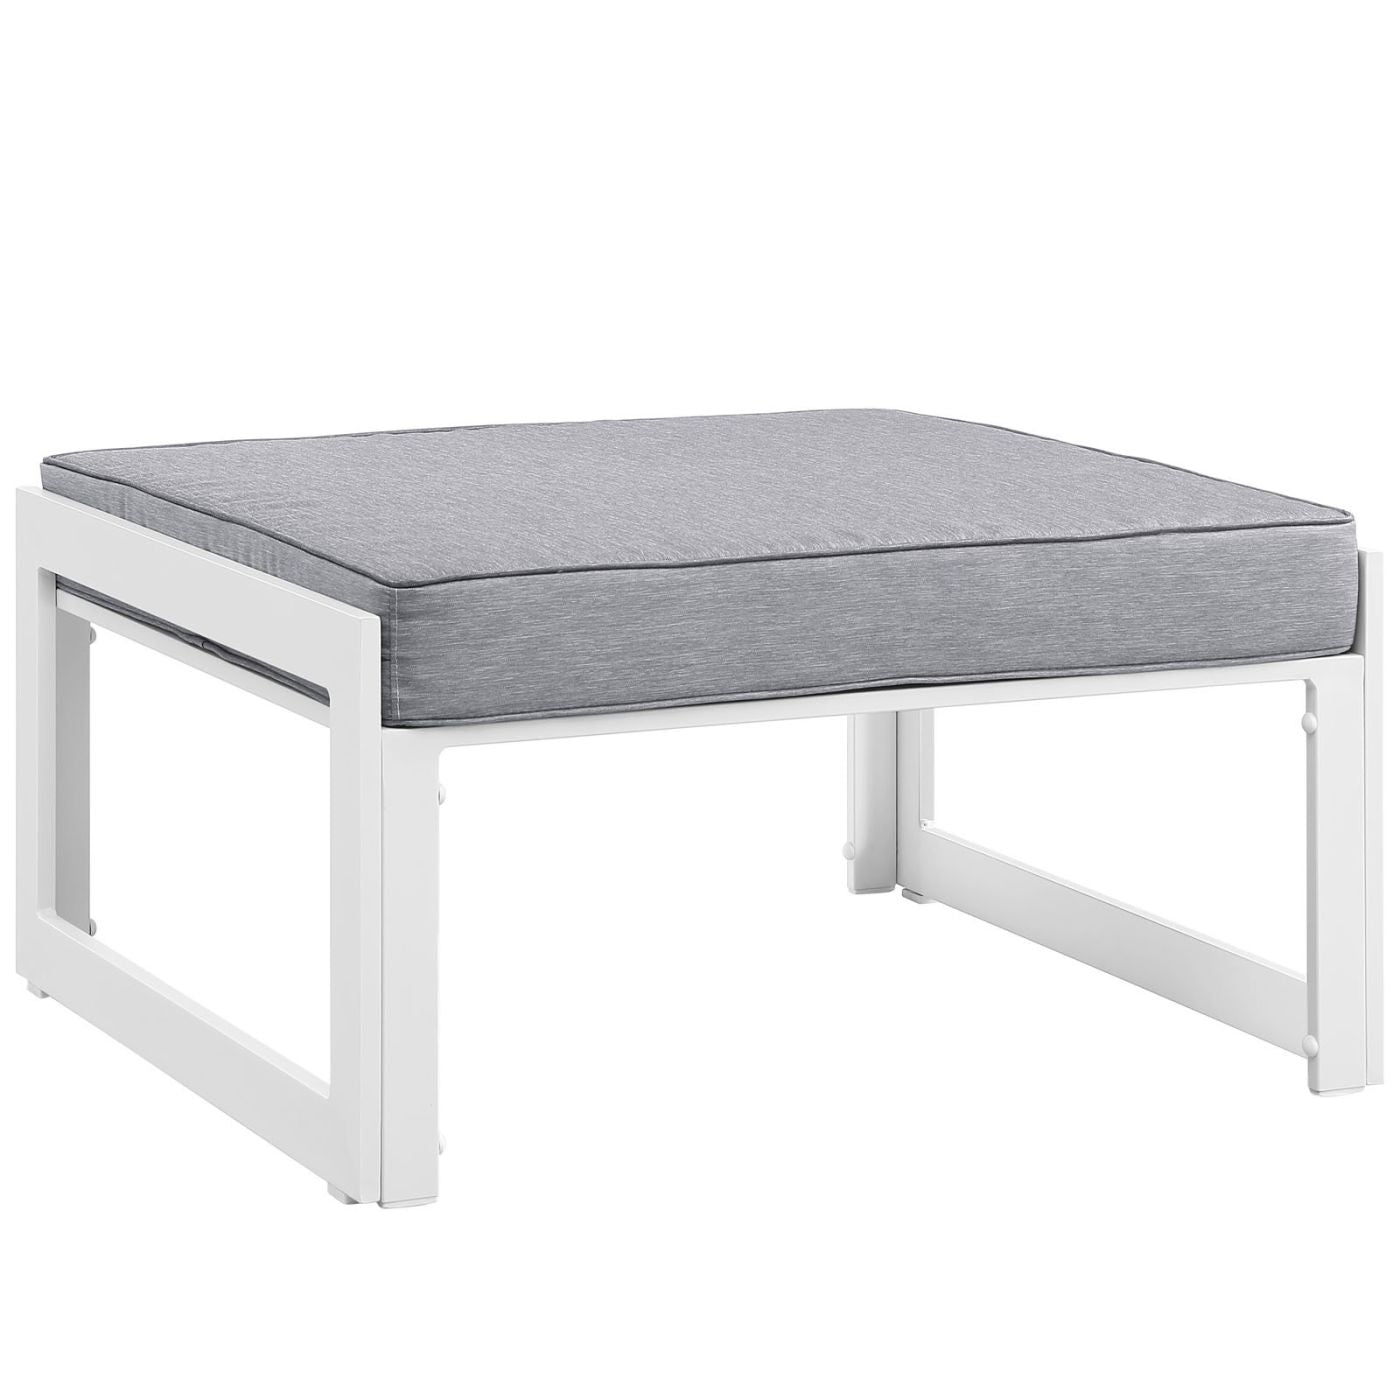 Modway Fortuna Outdoor Patio Ottoman EEI 1521 WHI GRY ly